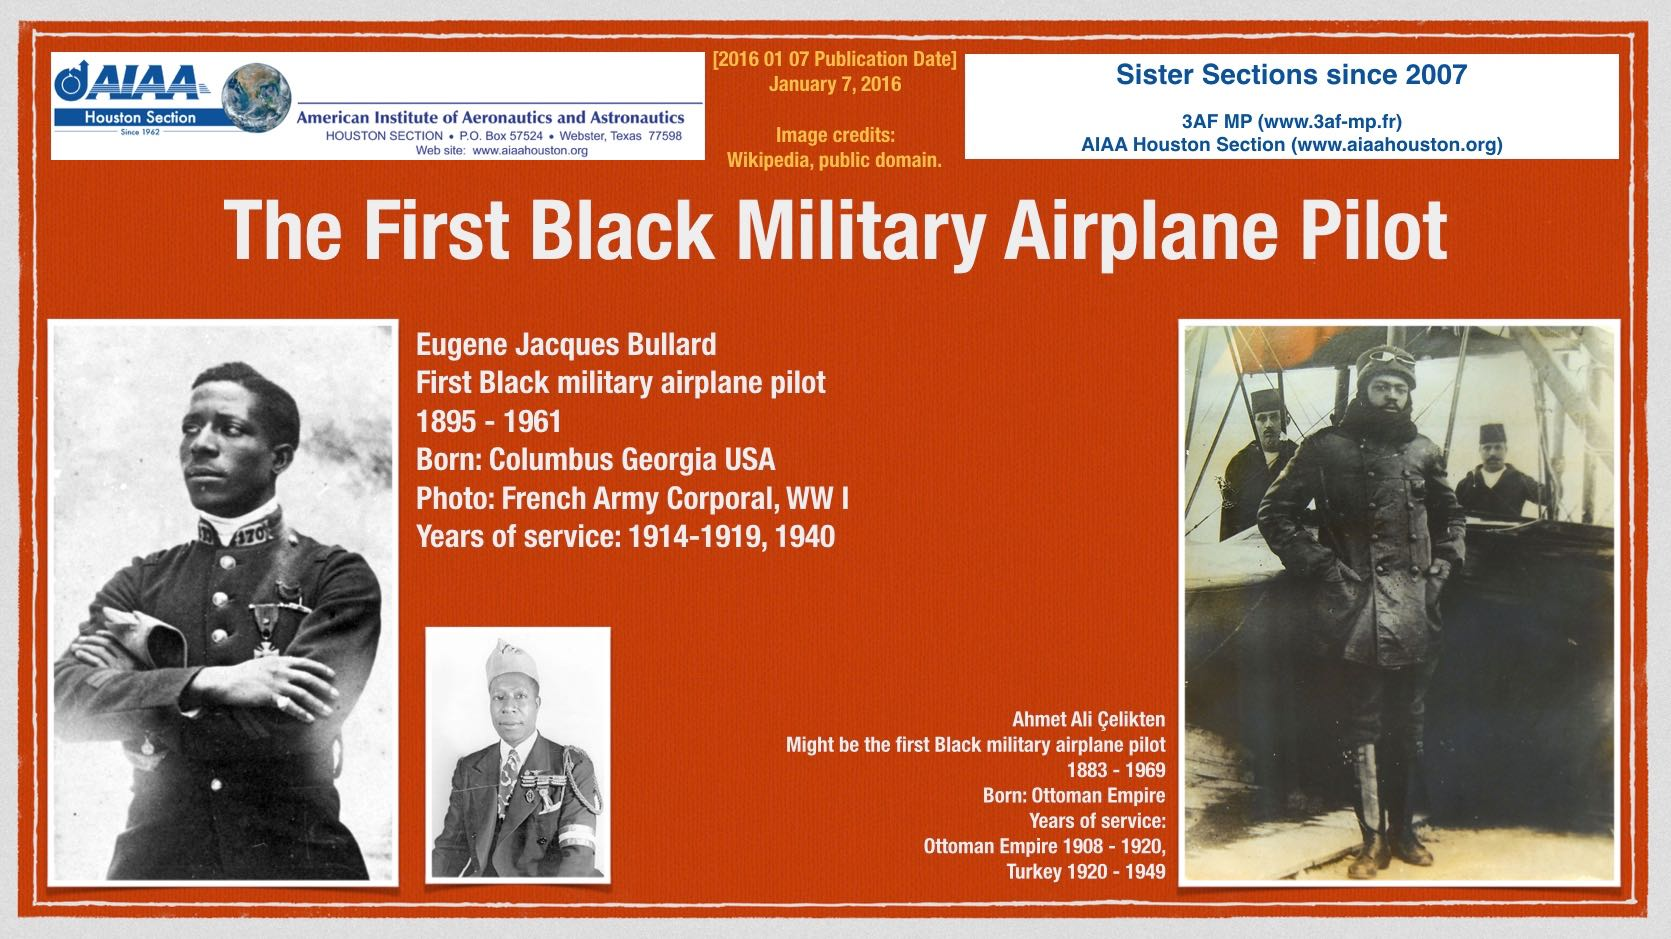 Above: First Black military airplane pilot. Wikipedia articles: Bullard. Çelikten. (Click to zoom.)